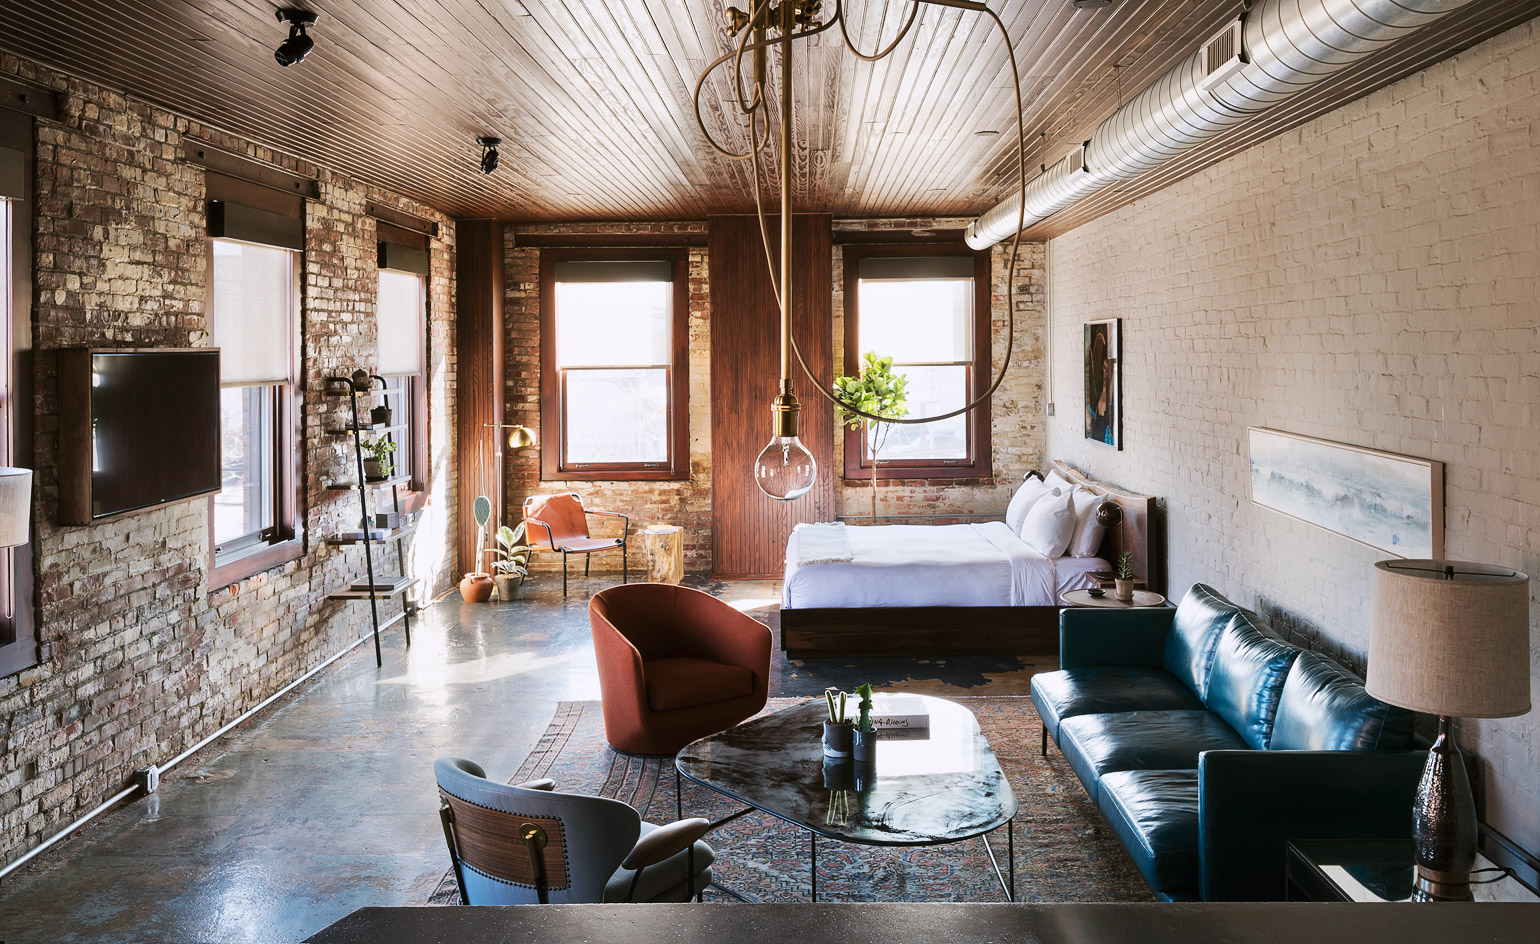 The 6 Best Hotels In Philadelphia For Design Lovers